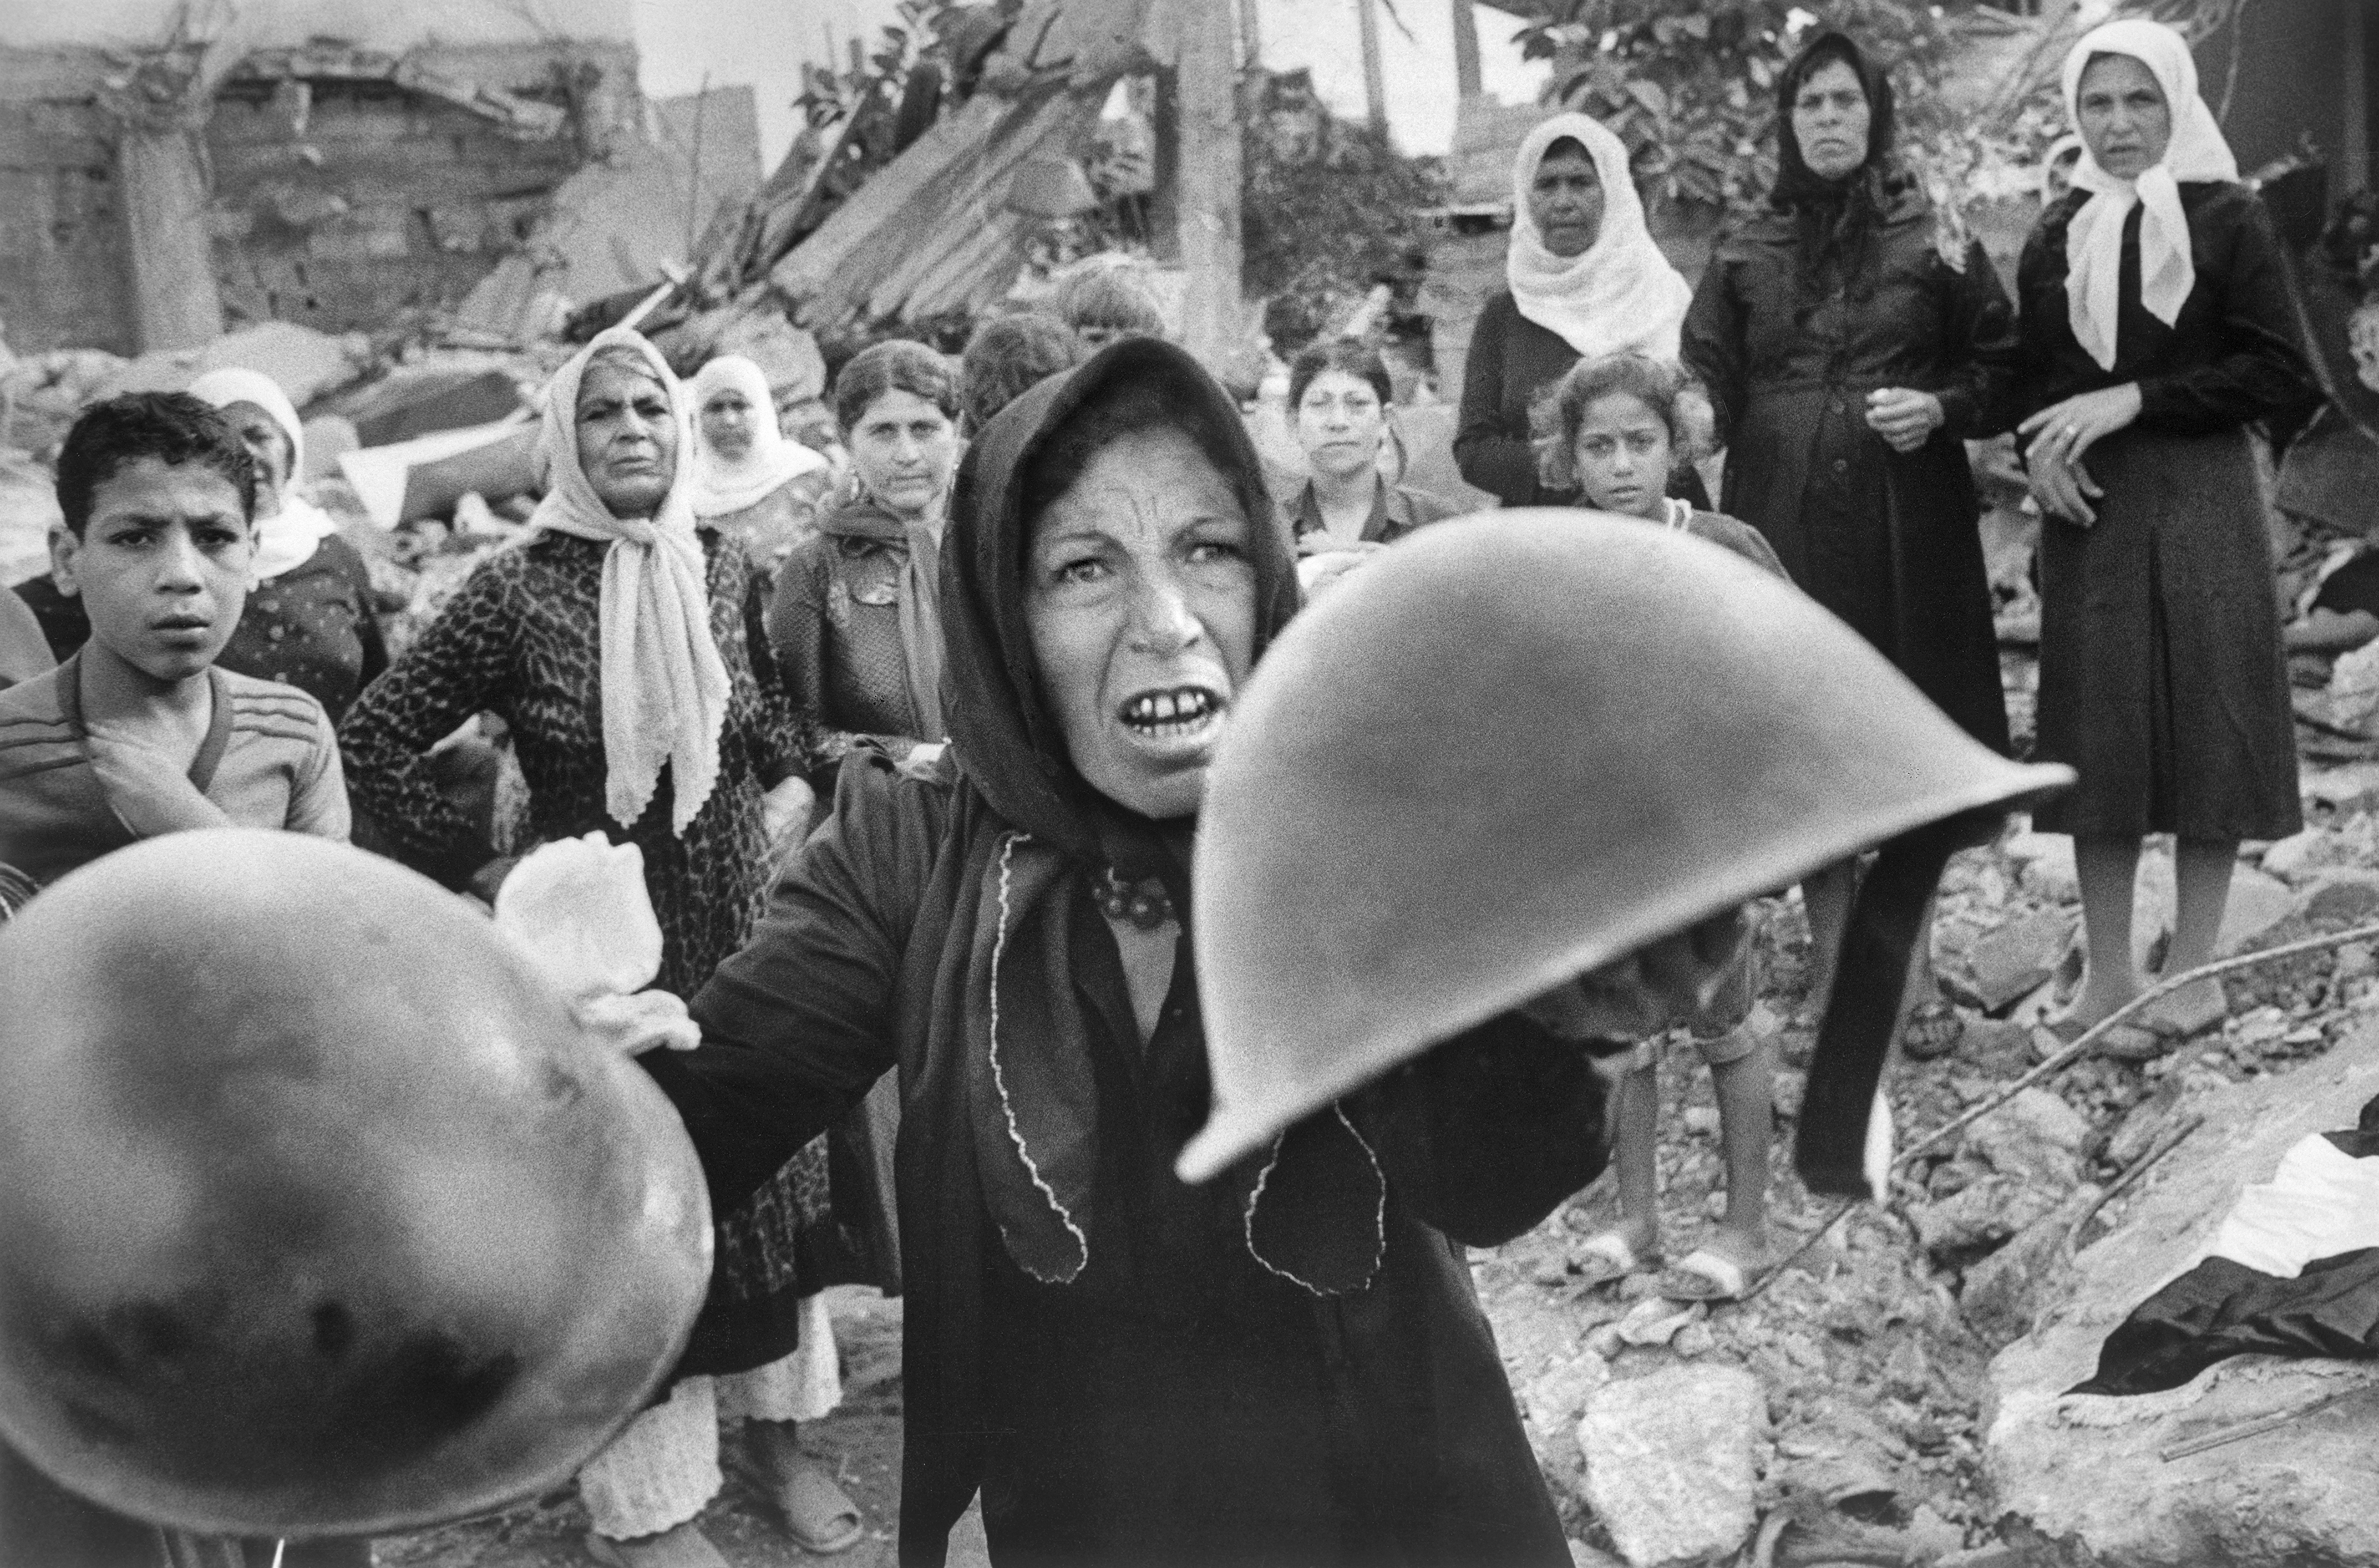 A Palestinian woman brandishes helmets during a memorial service in Beirut September 27, 1982, for victims of Lebanon's Sabra refugee camp massacre. She claimed the helmets ere worn by those who massacred hundreds of her countrymen. (AP Photo/Bill Foley)